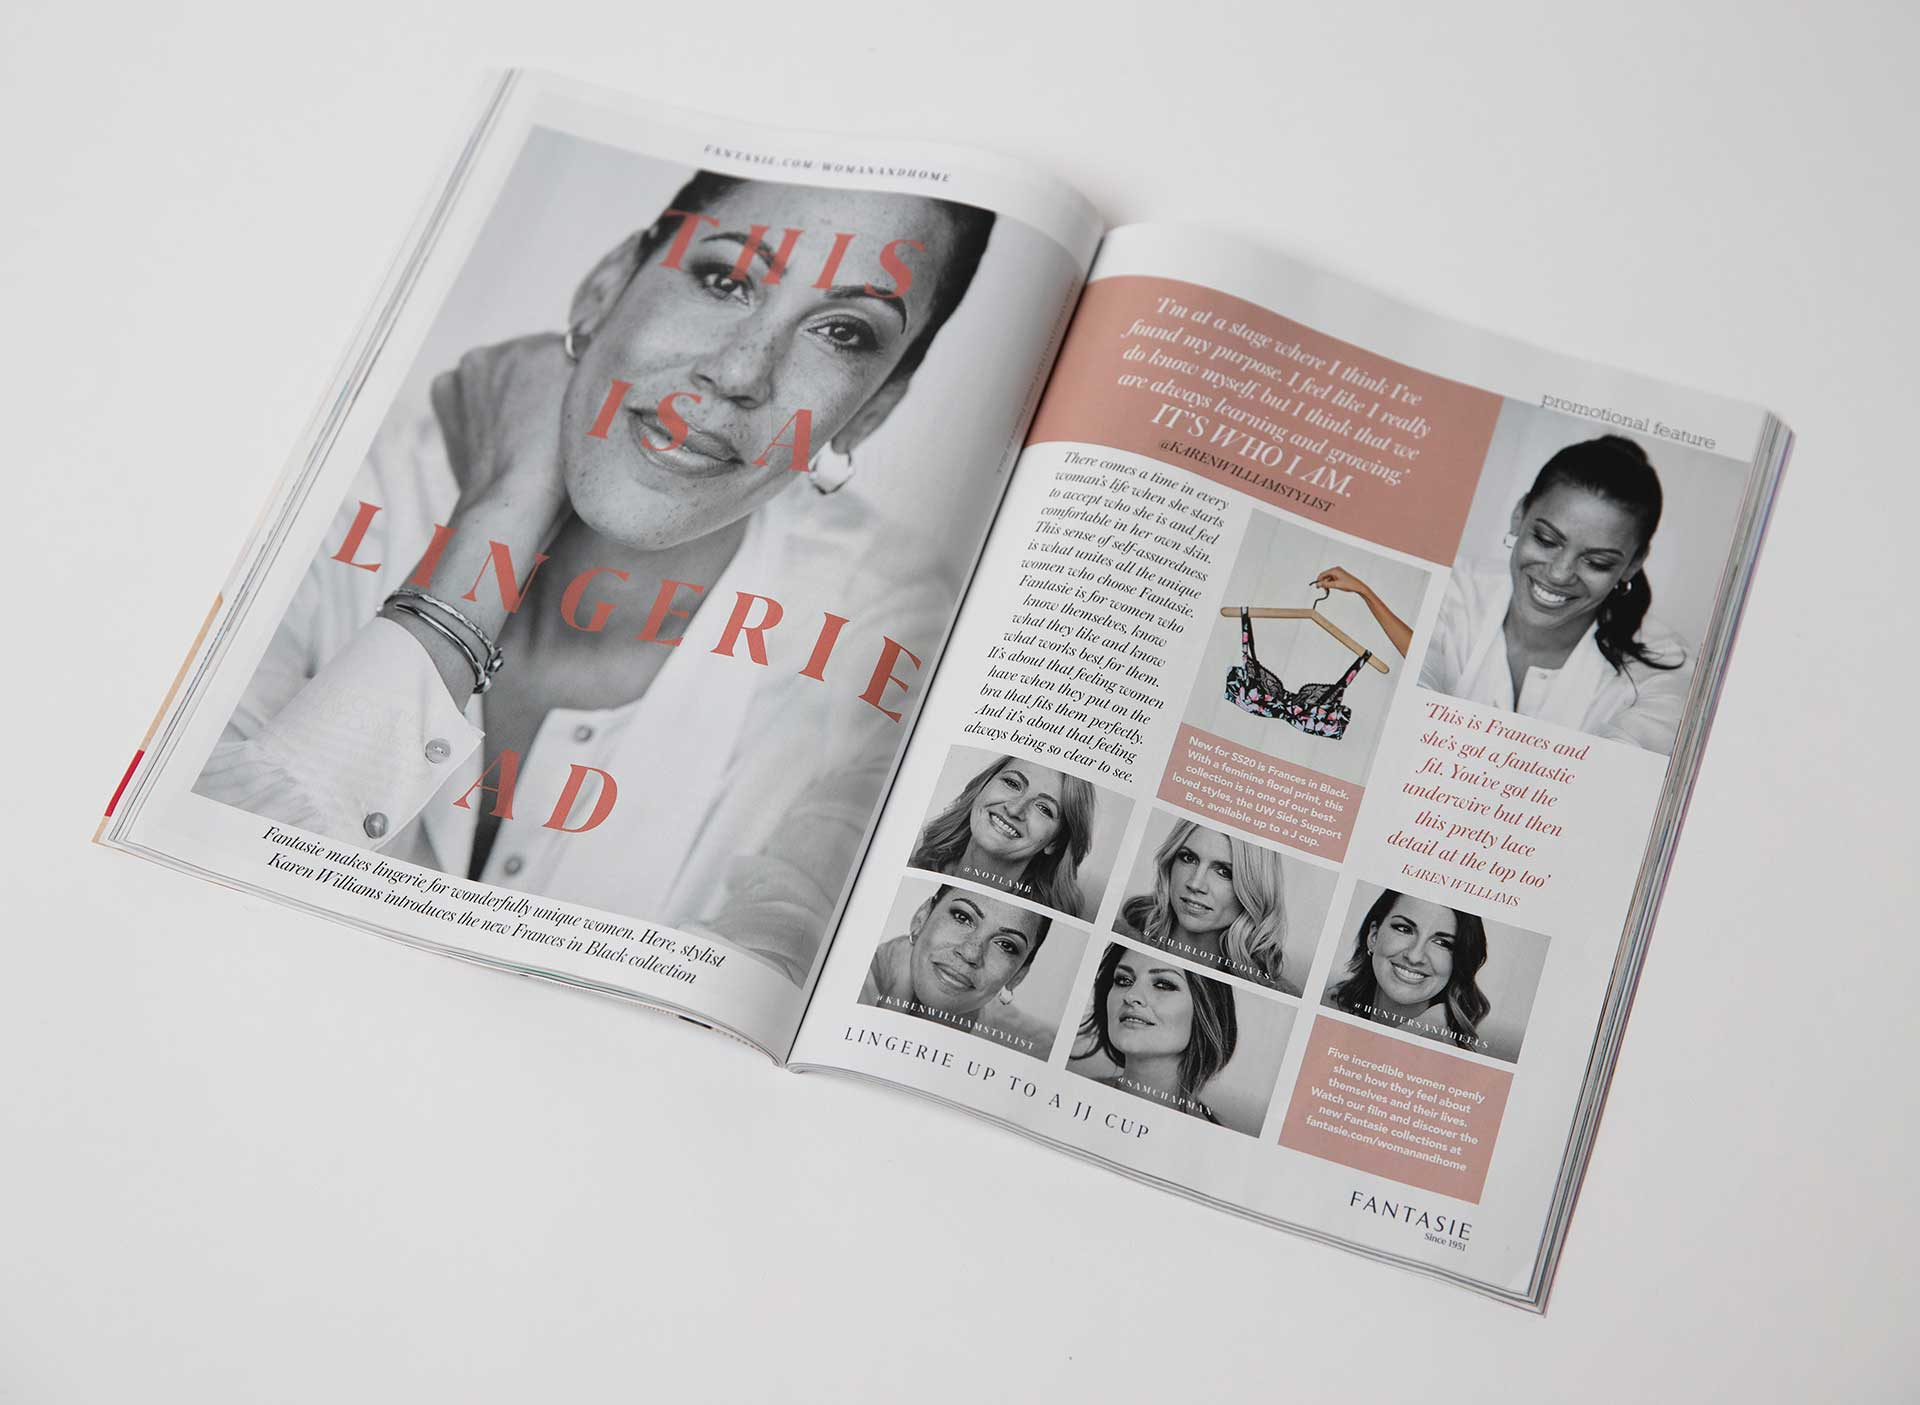 Fantasie - It's Who I Am - Advertorial